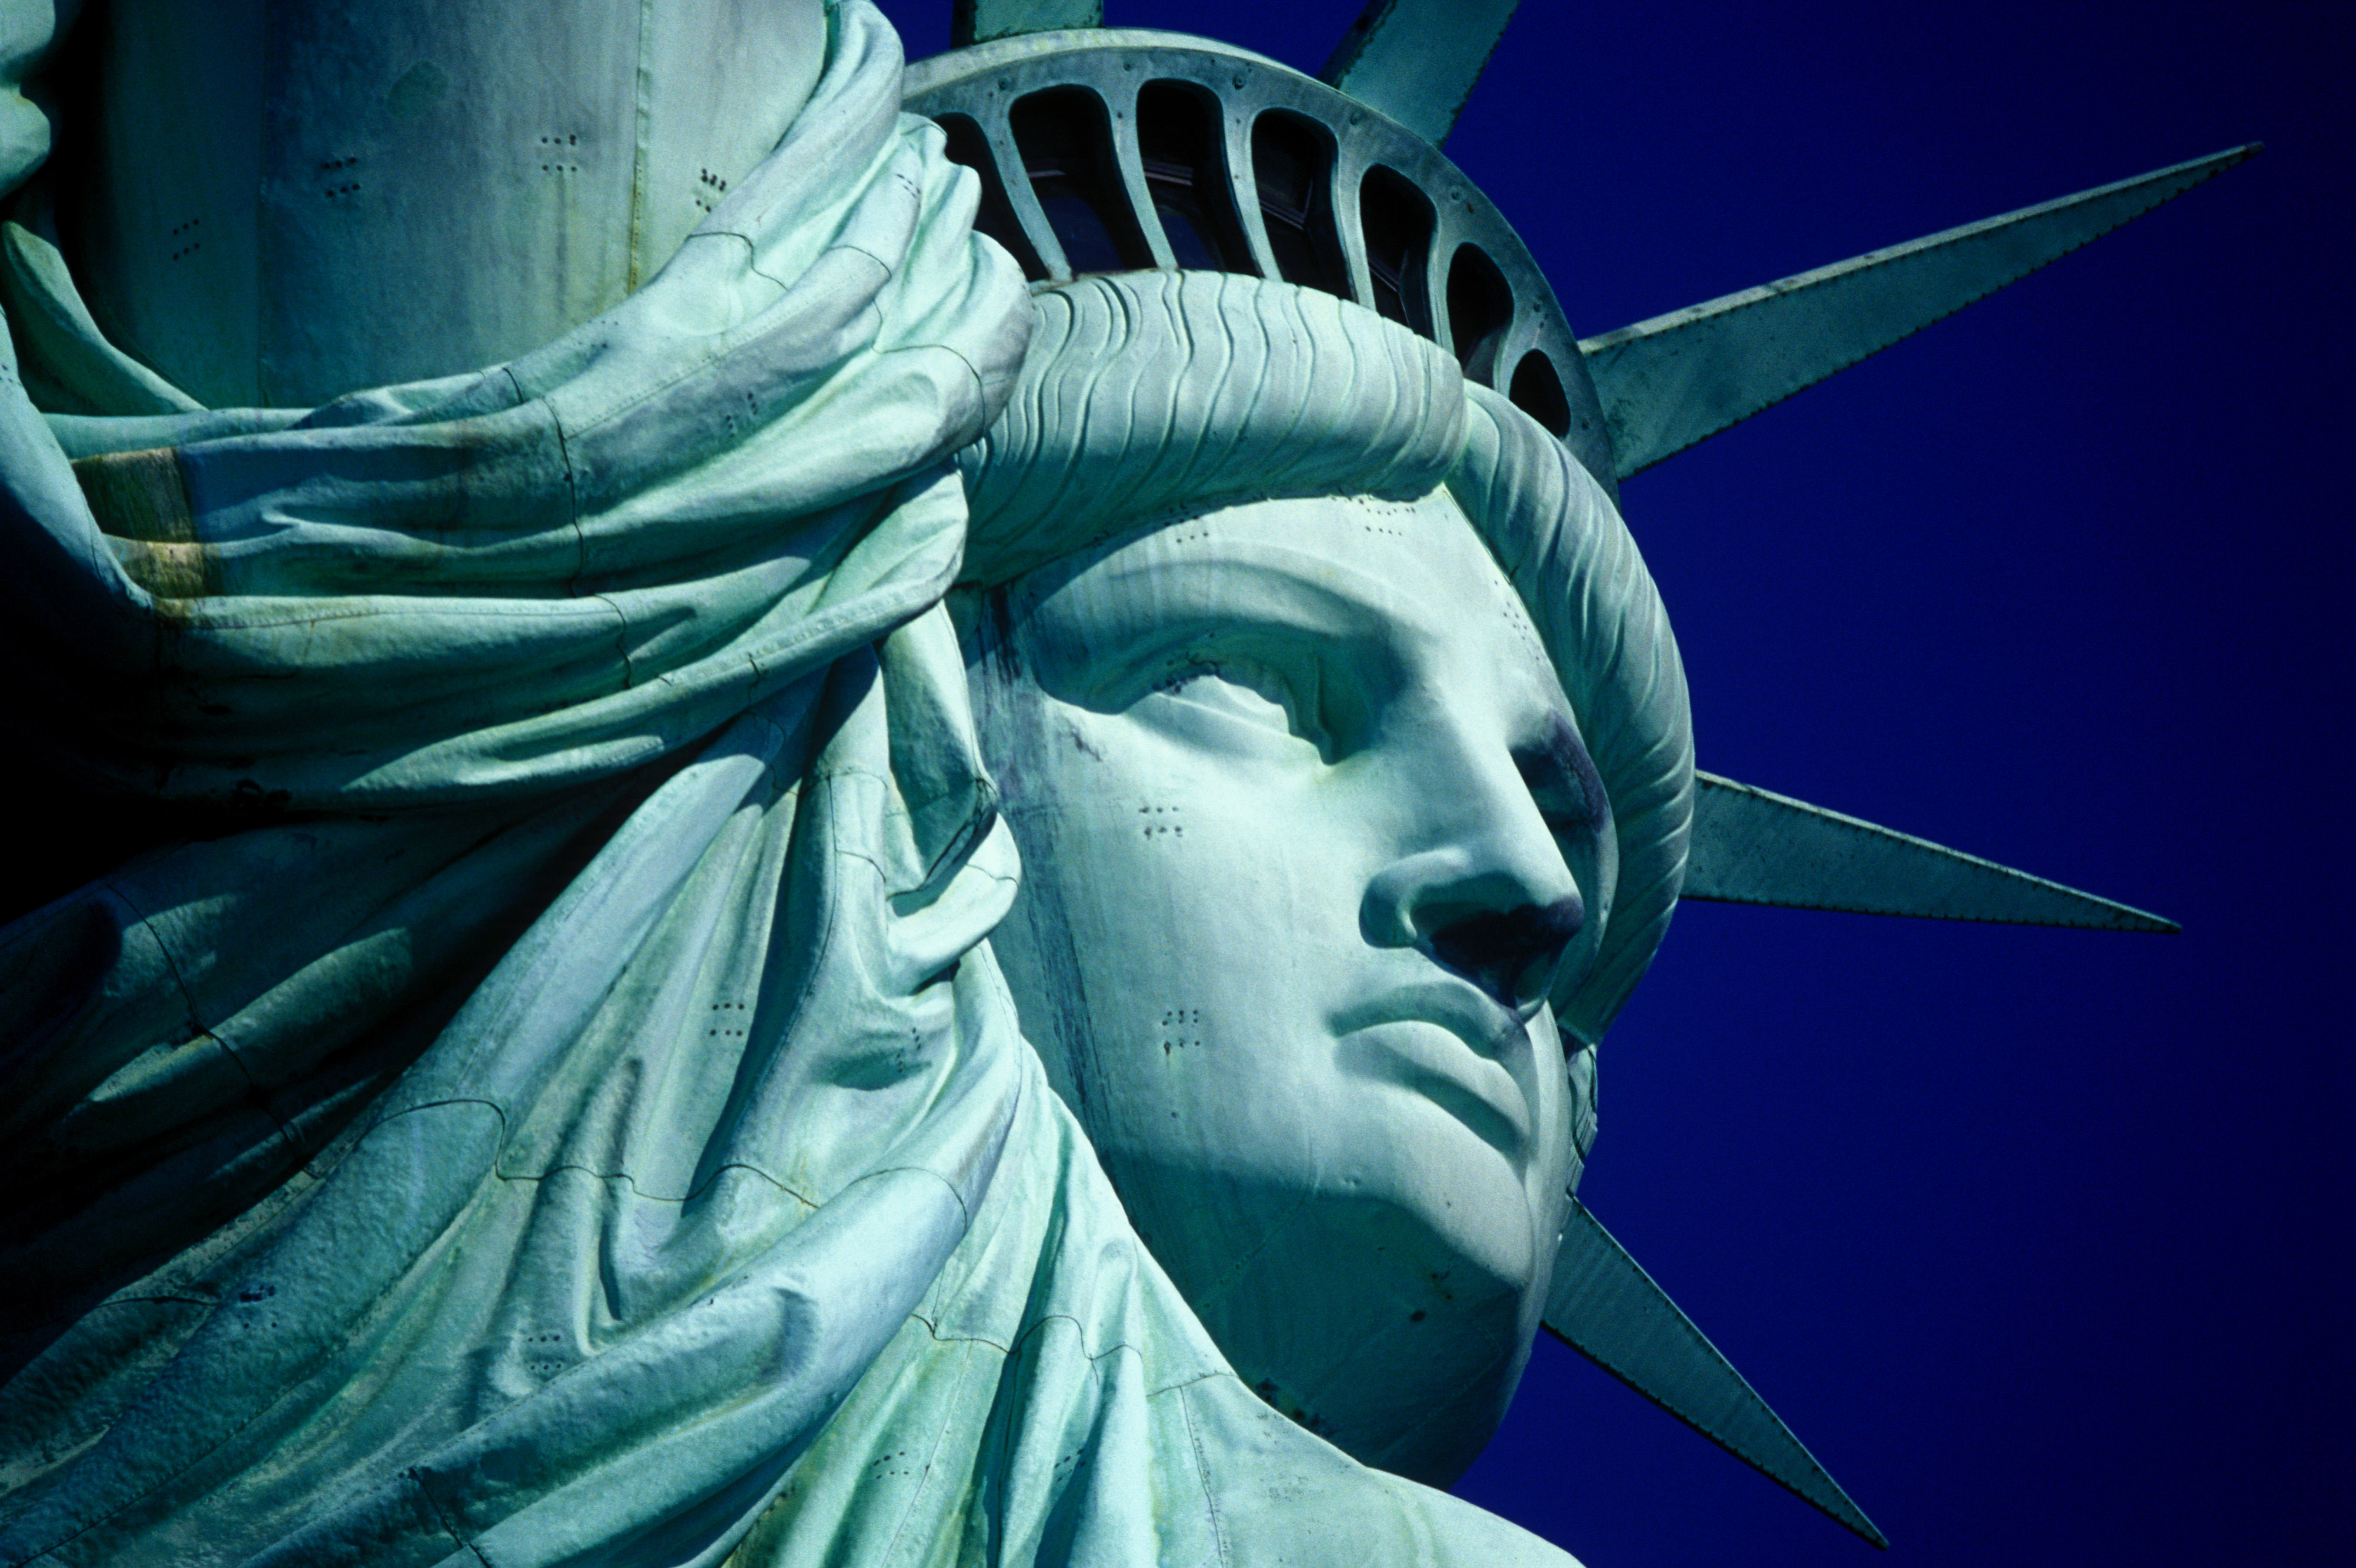 ever wondered why the statue of liberty is that green blue color